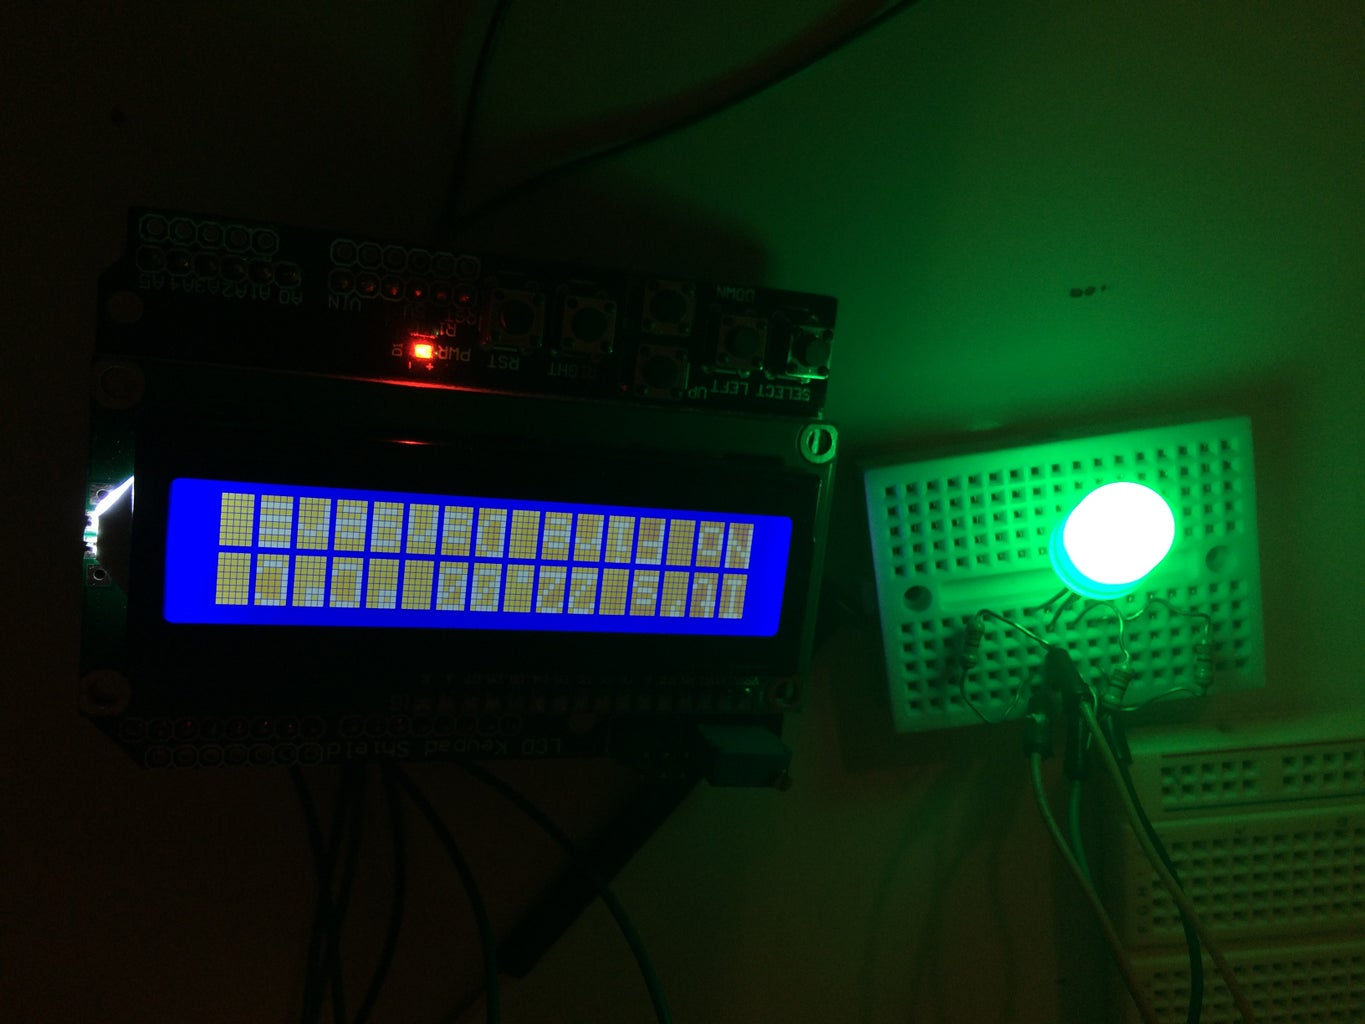 Arduino LCD Fire Safety Warning System